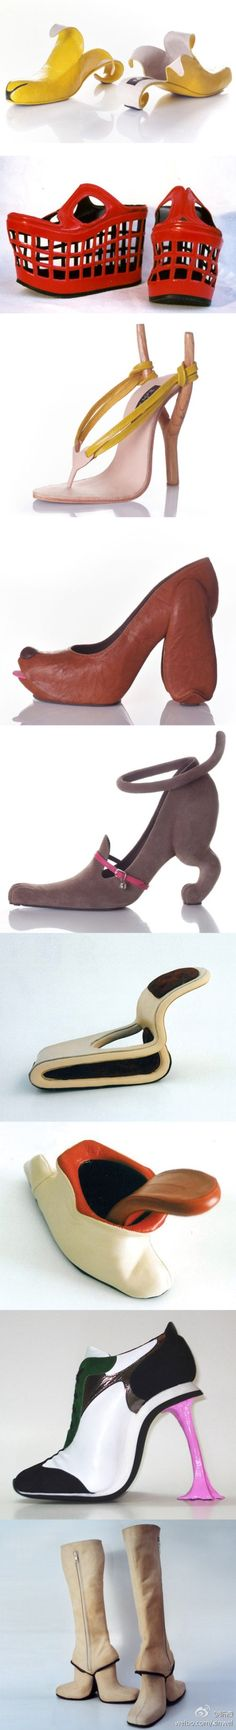 Funny shoes